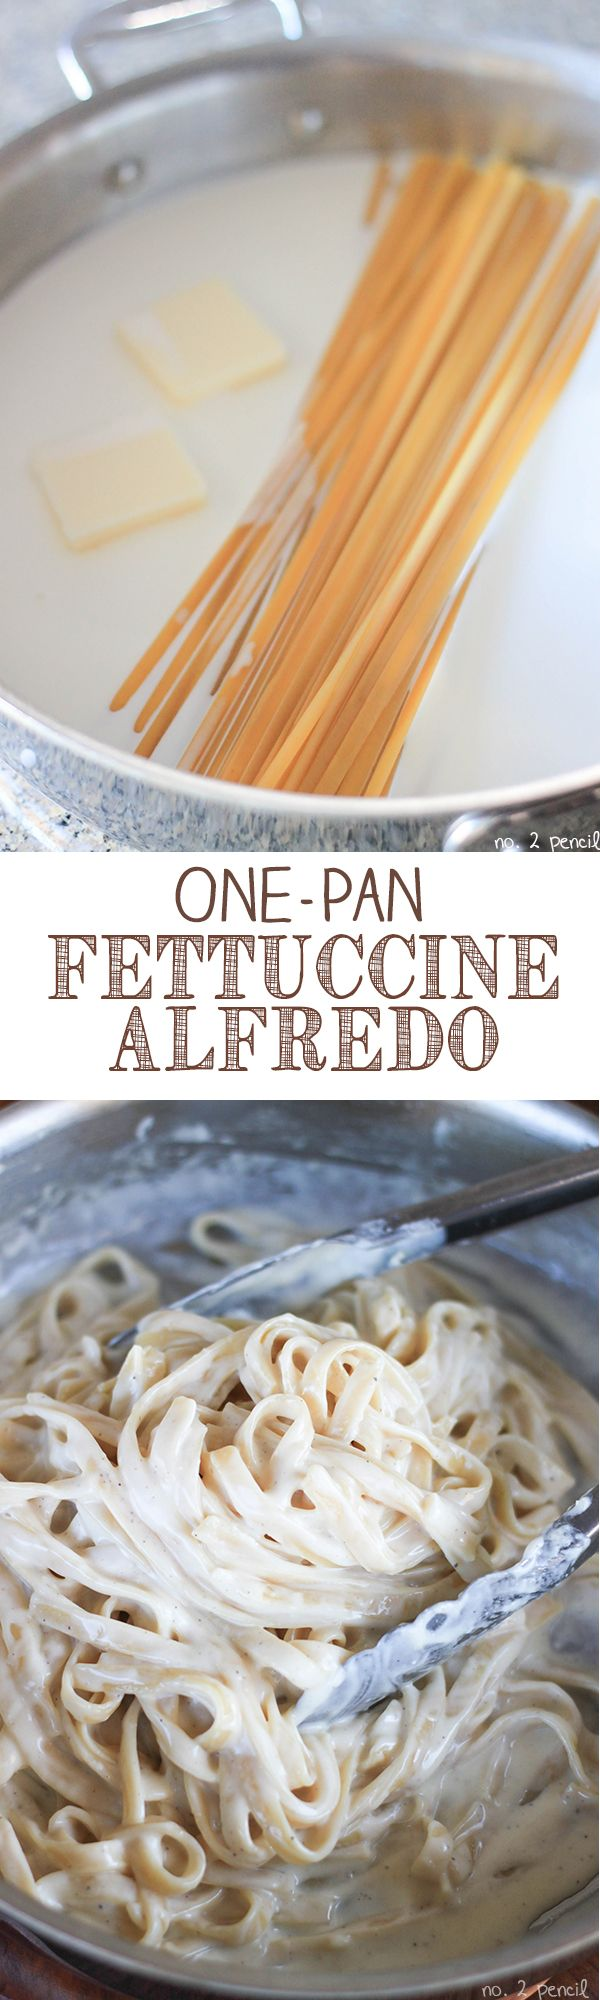 Easy One Pan Fettuccine Alfredo--Even the pasta cooks in the same pan!: Pasta Recipes, One Pan Fettuccine, Super Easy, Fettuccine Alfredo, Pasta Cooking, 4 5 People, Pasta S, Feeding 4 5, Food Drinks